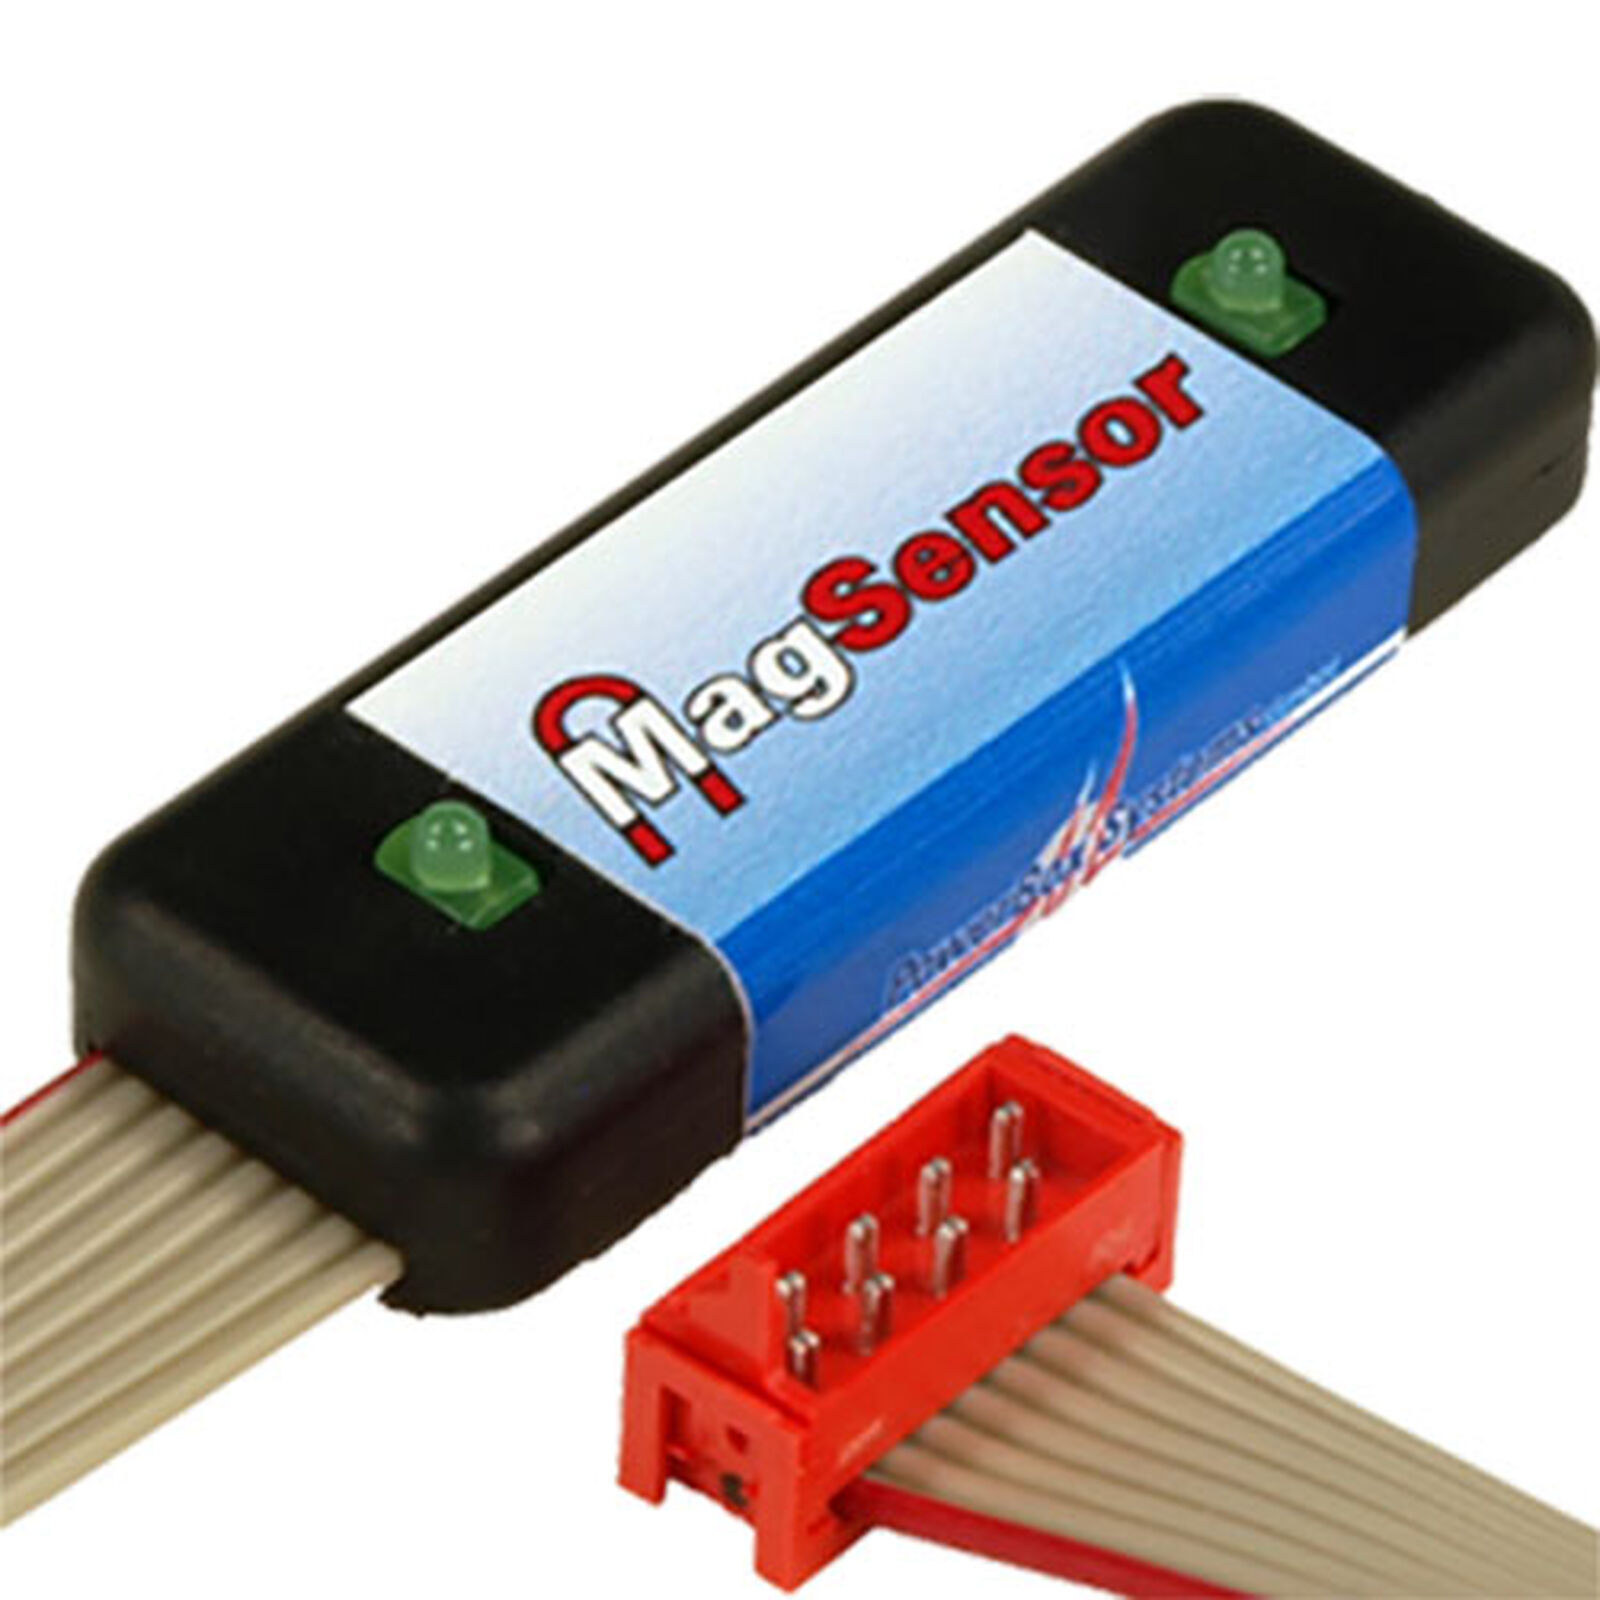 MagSensor Magnetic Power Switch